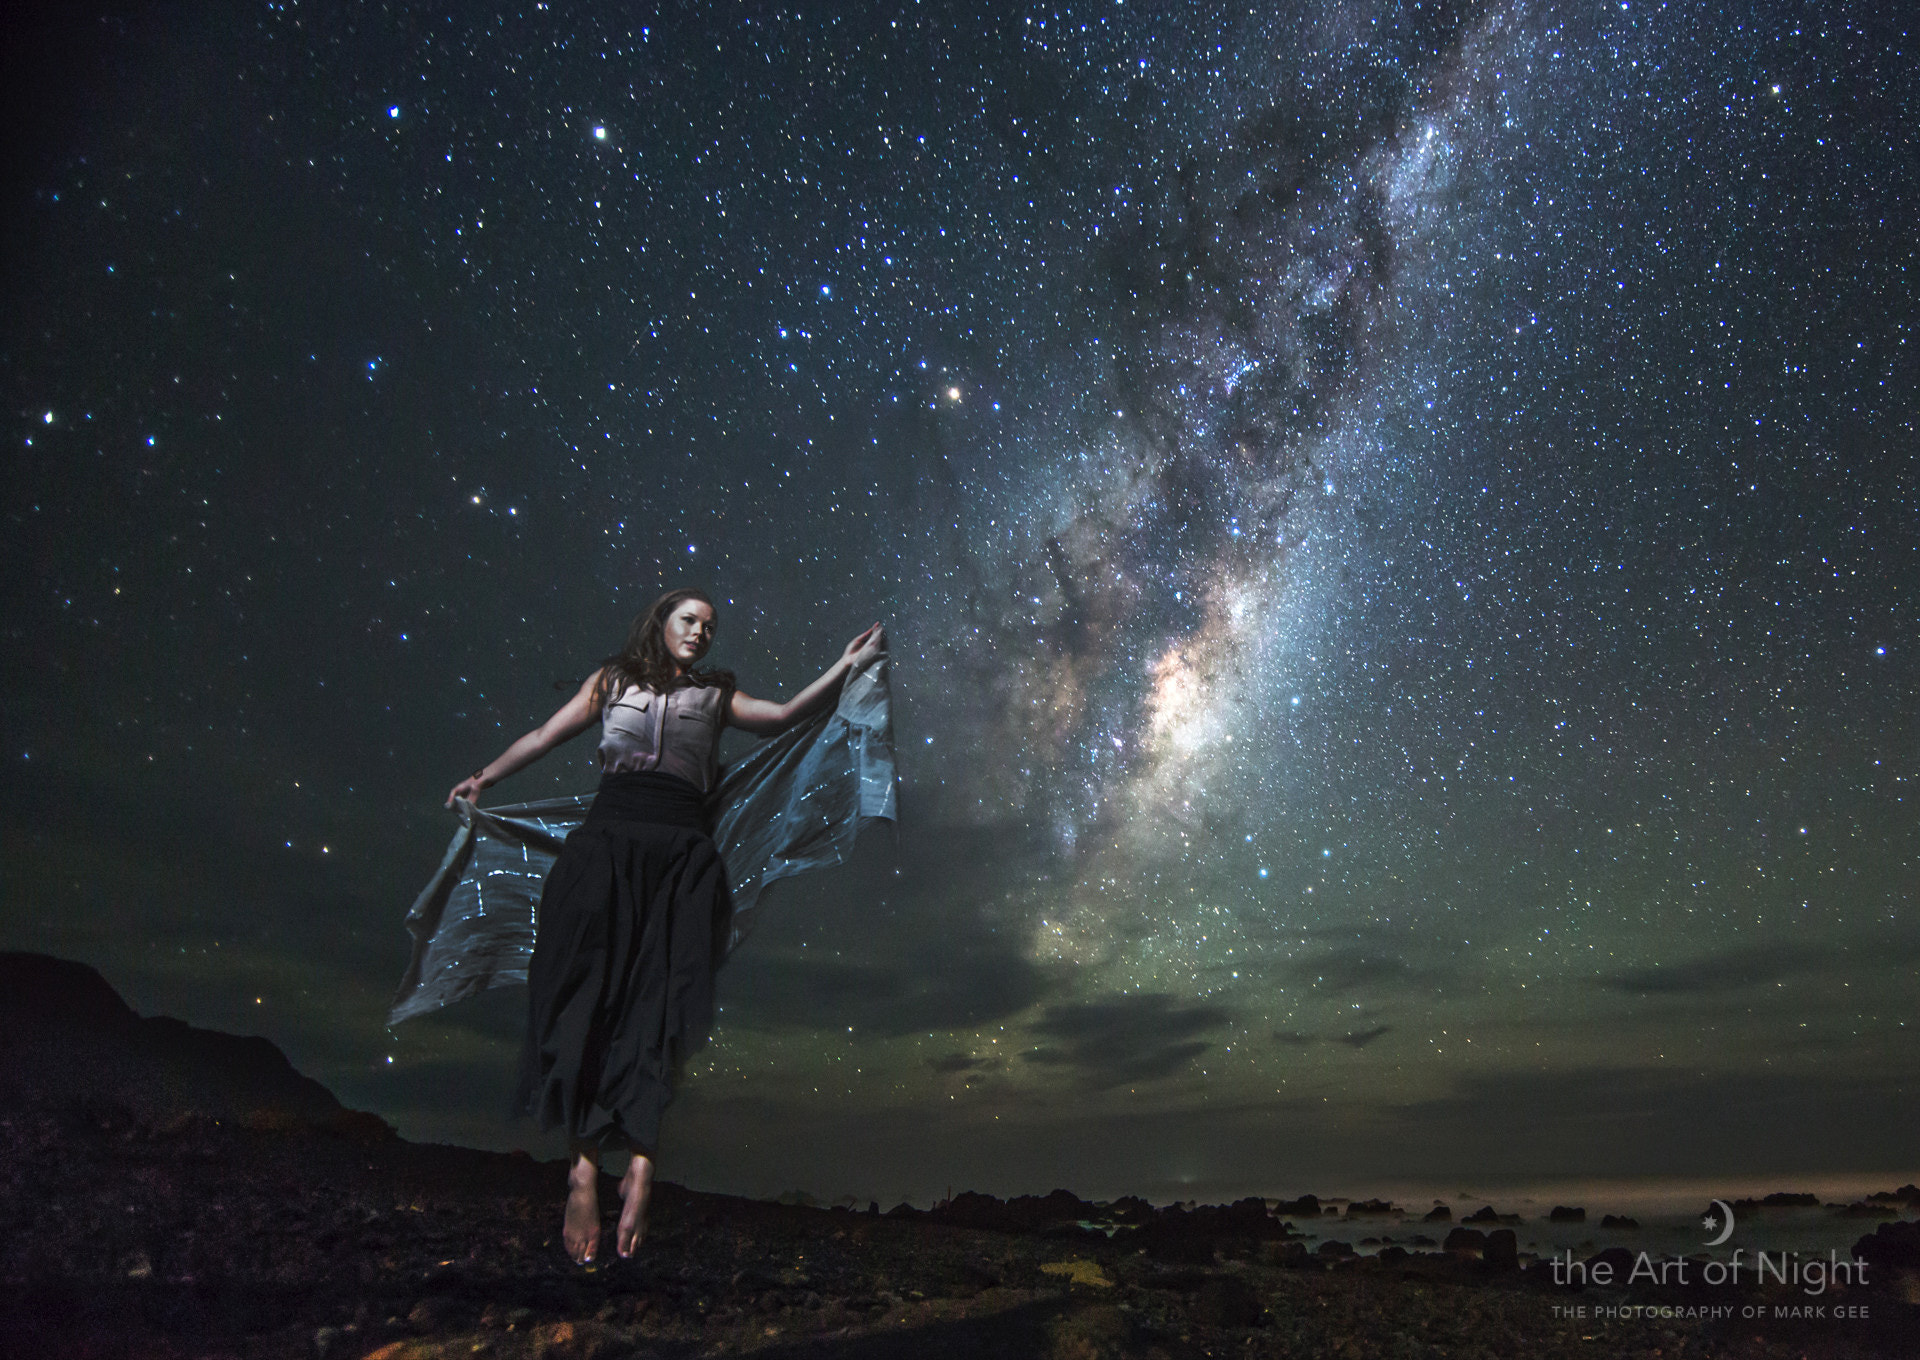 Photograph Levitation Under the Stars by Mark Gee on 500px